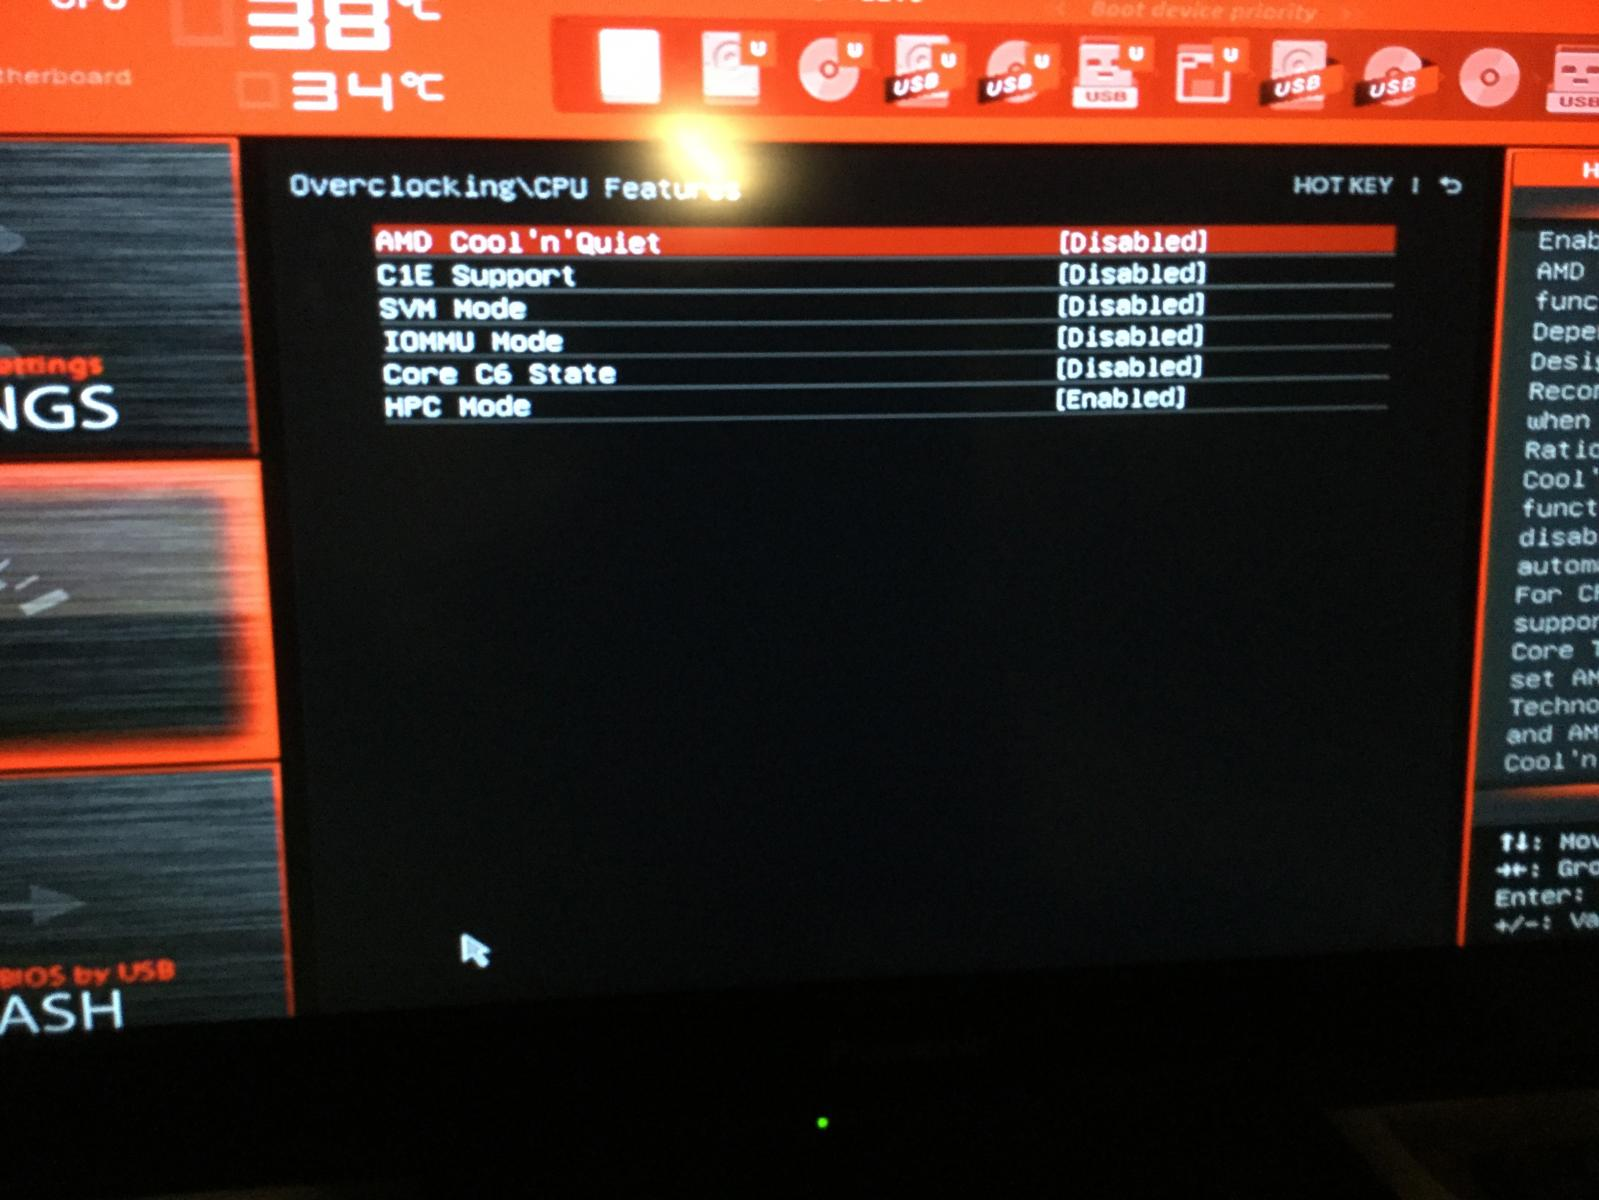 Help overclocking the FX 6350 to 4 5Ghz  - Troubleshooting - Linus